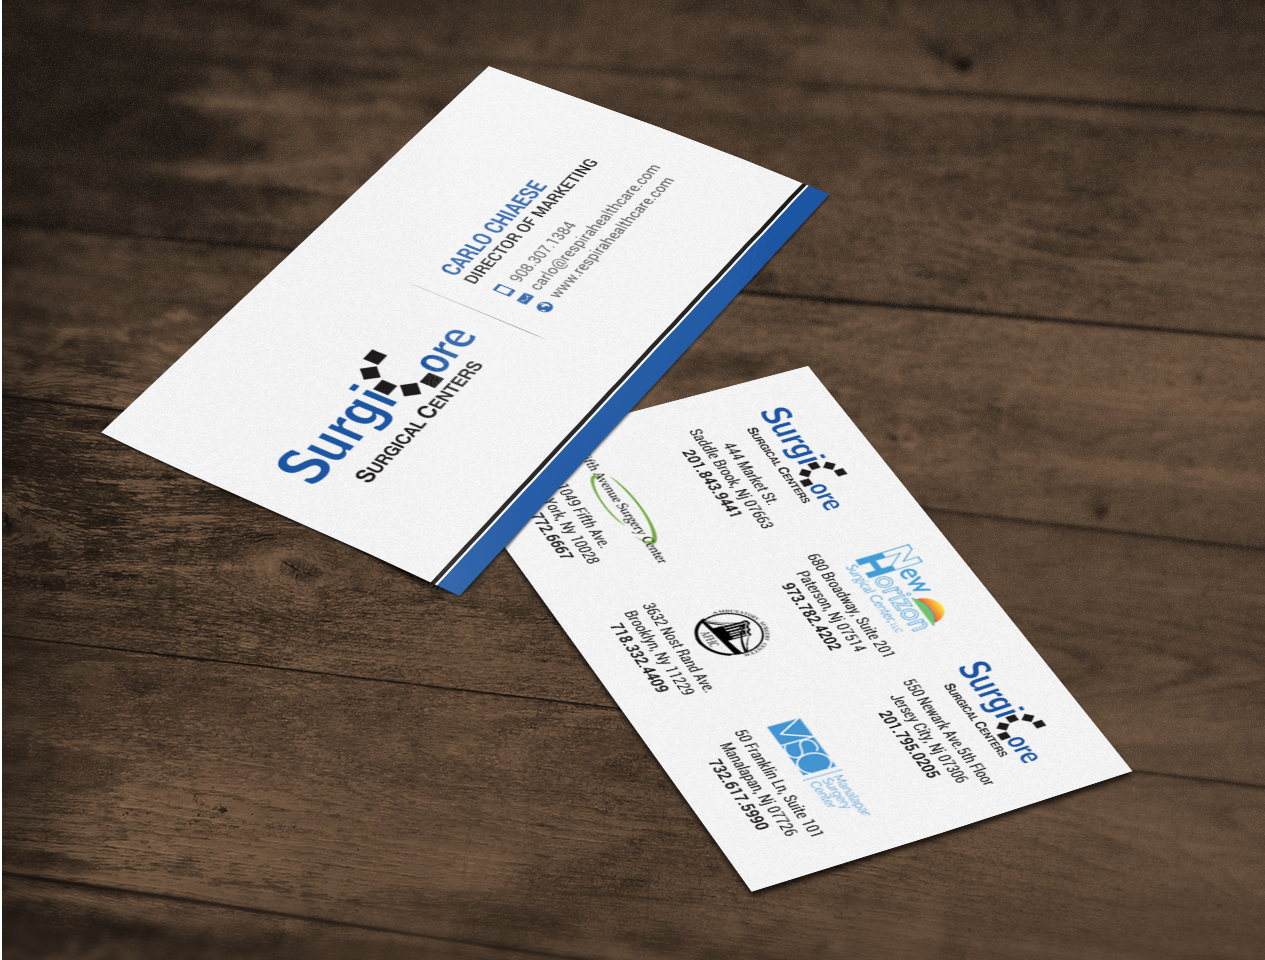 Business card design for a company by chandrayaaneative design business card design by chandrayaaneative for this project design 19057805 reheart Choice Image